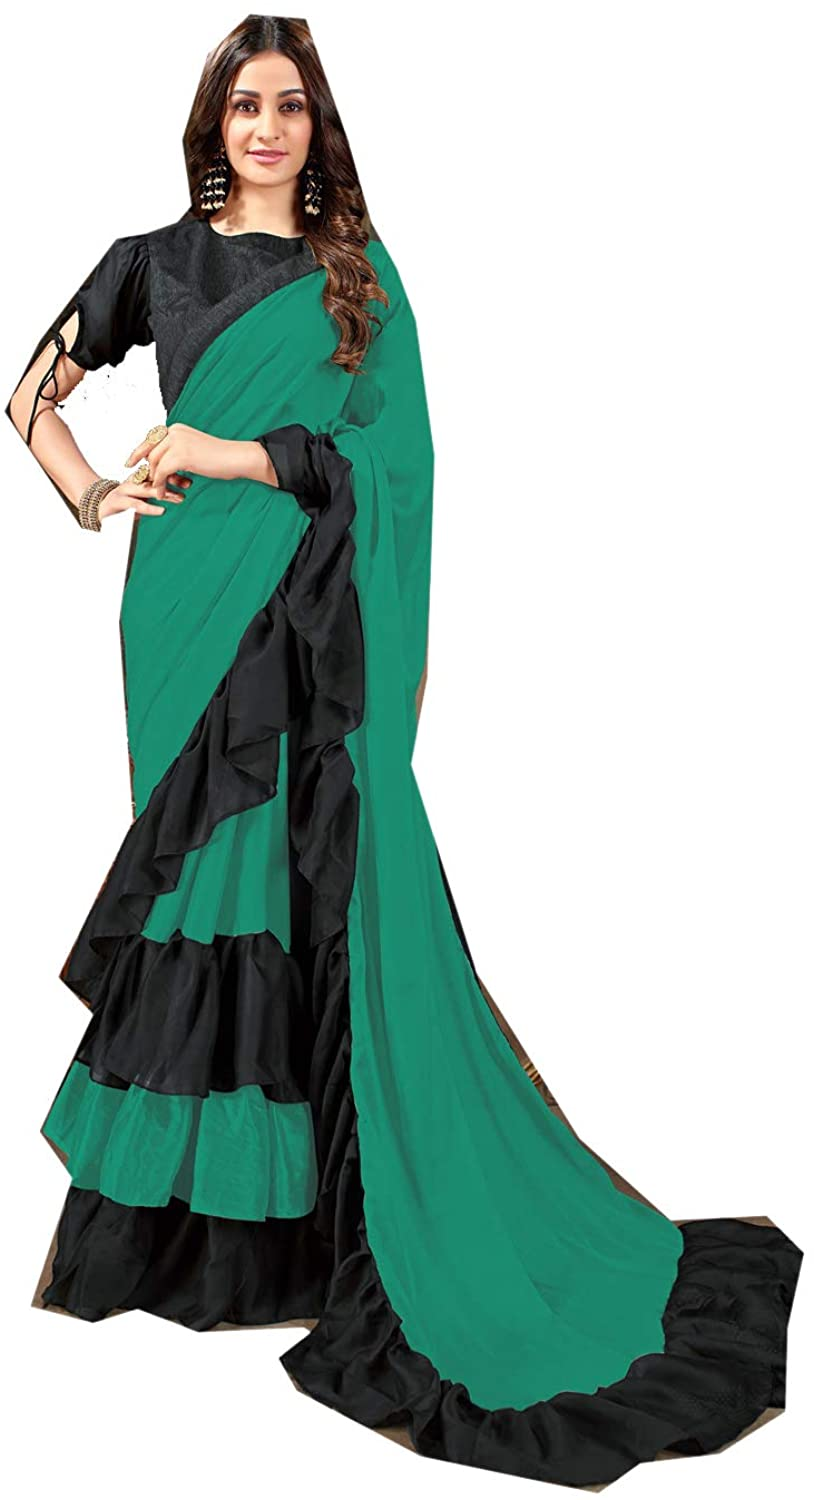 Saree for Women Bollywood Wedding Designer Rangoli Georgette Sari with Unstitched Blouse. Green